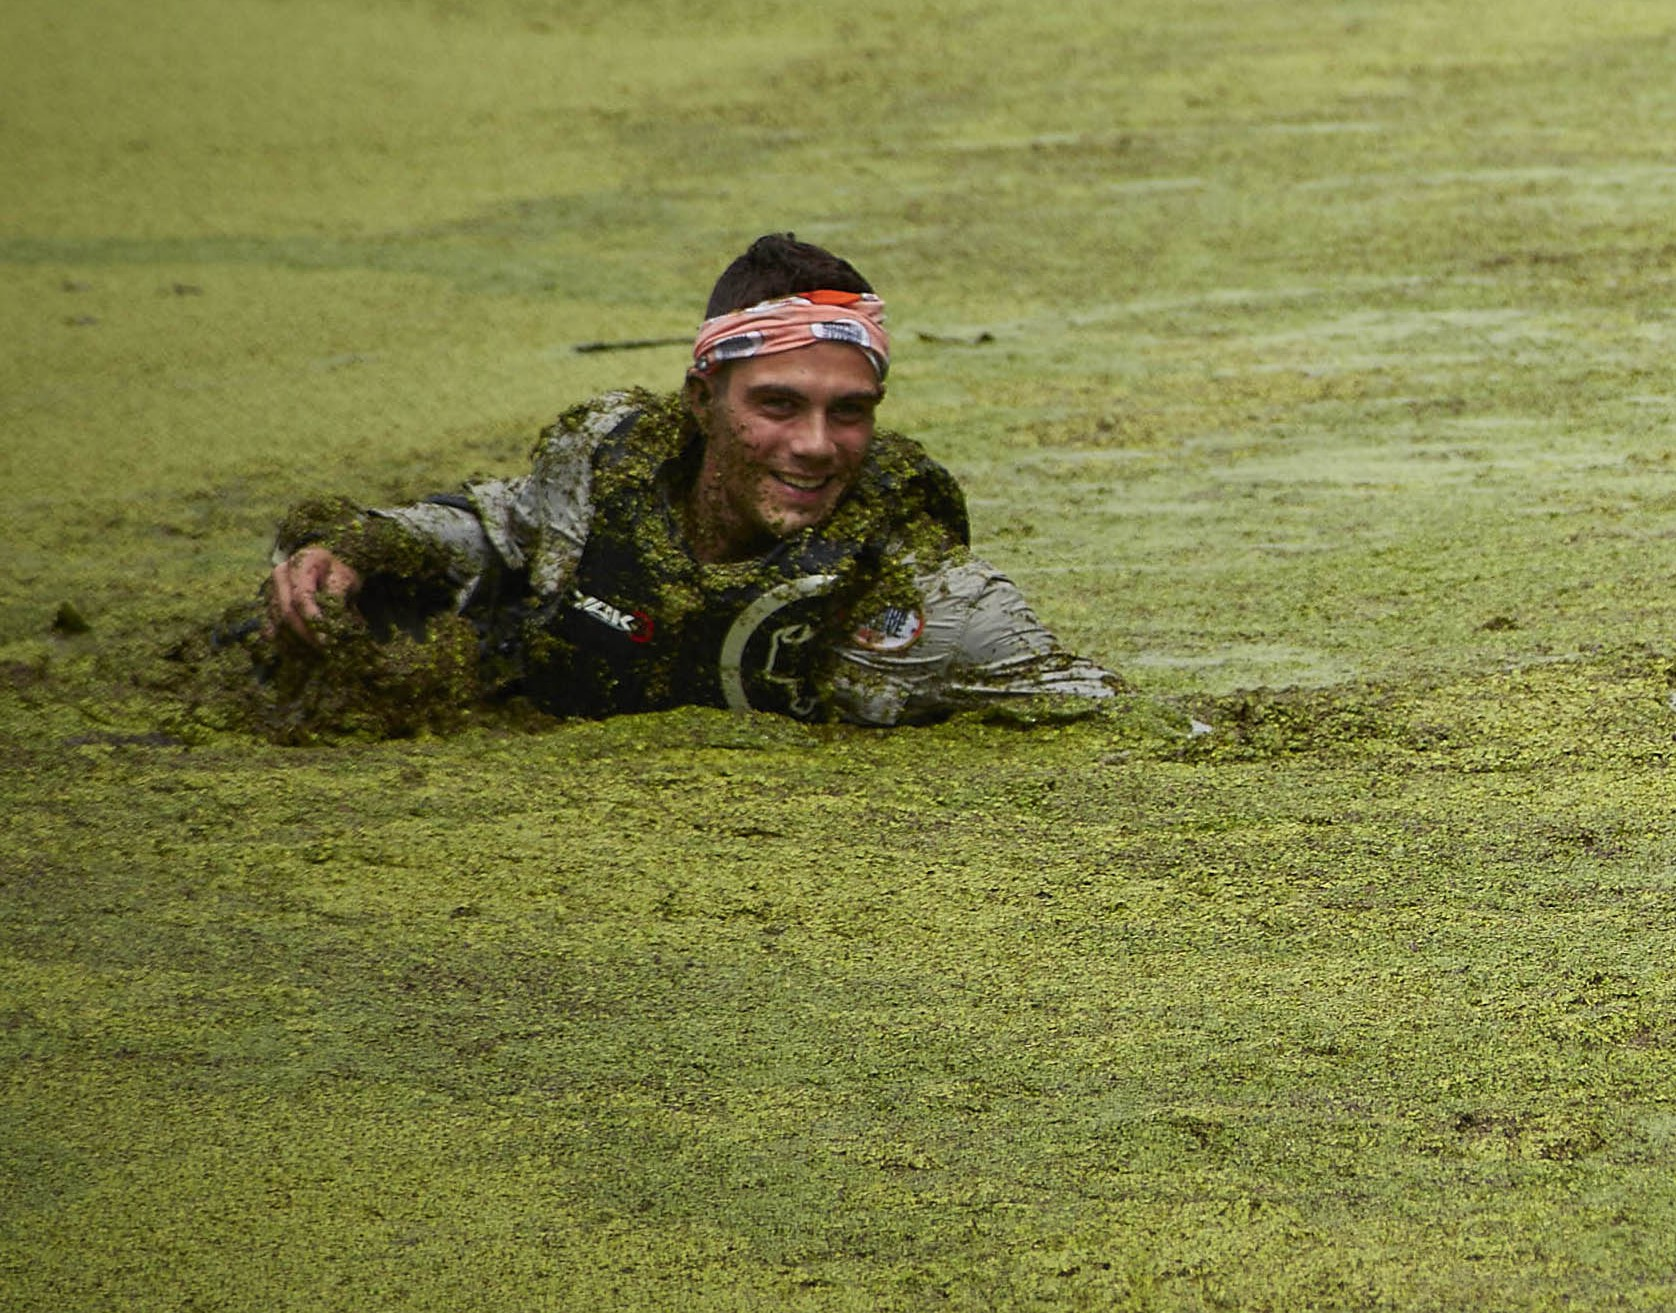 Bear Grylls' Mission Survive: Max George smothered in algae? Oh go on then…